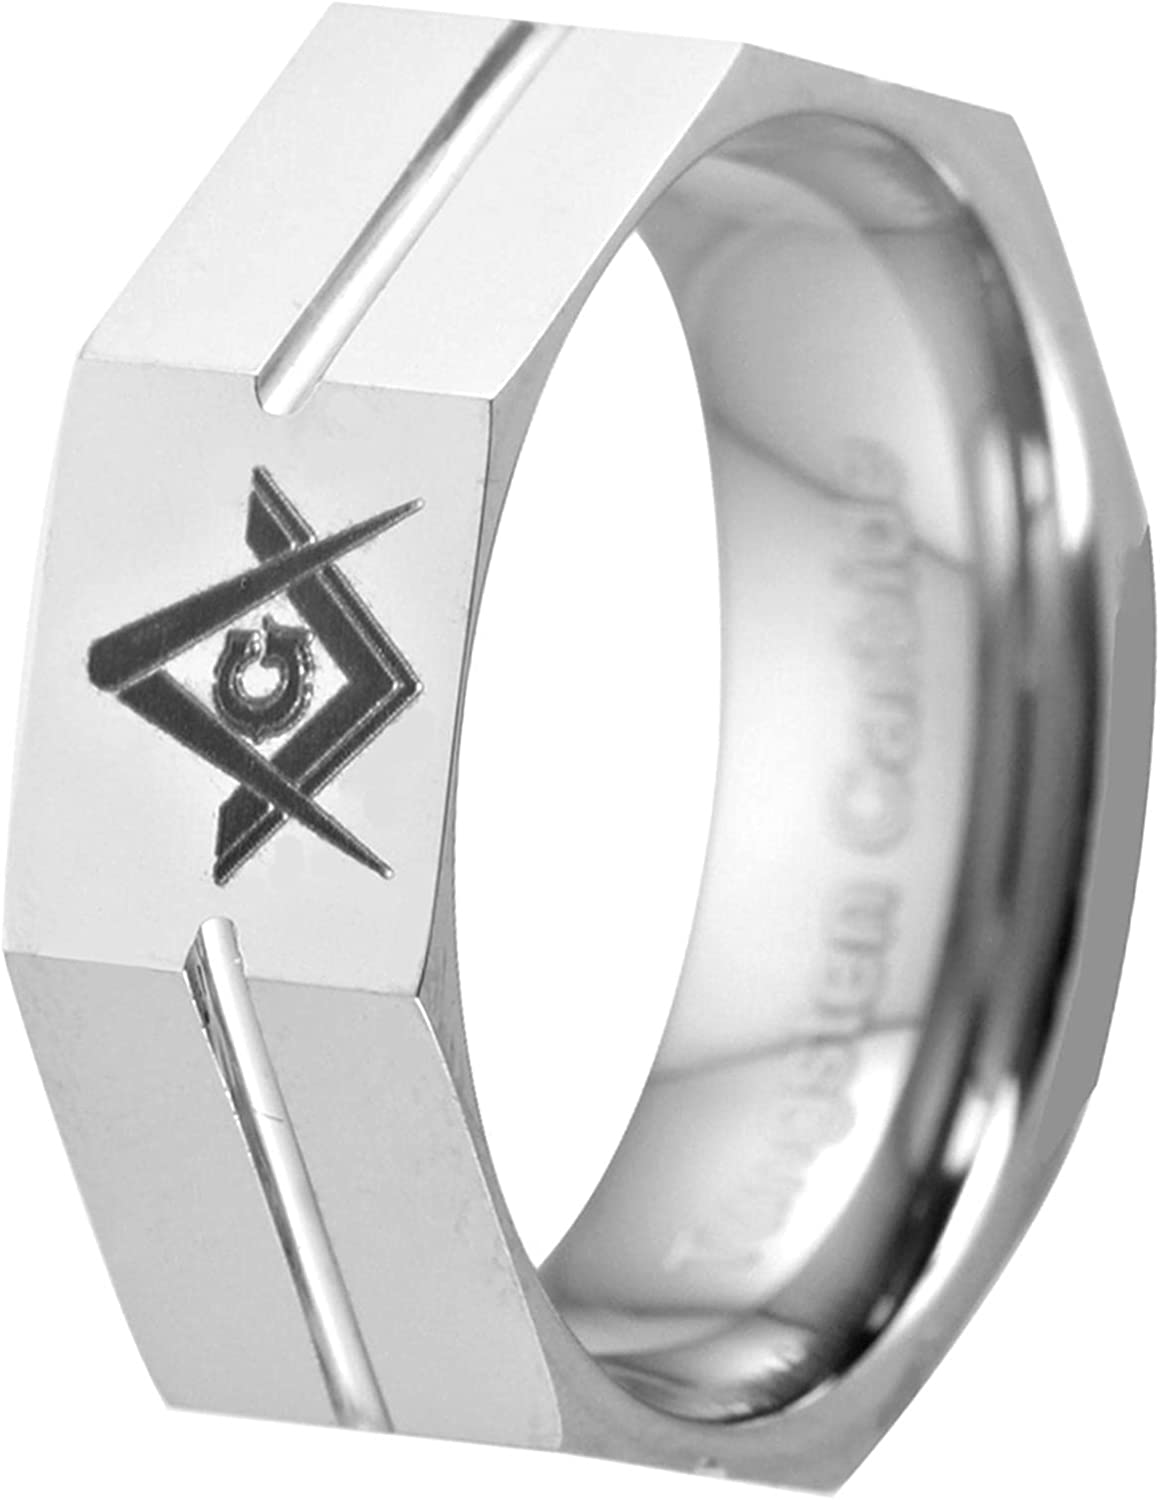 Carbide Masonic Max 72% OFF Band Max 52% OFF Rings Gifted Box With